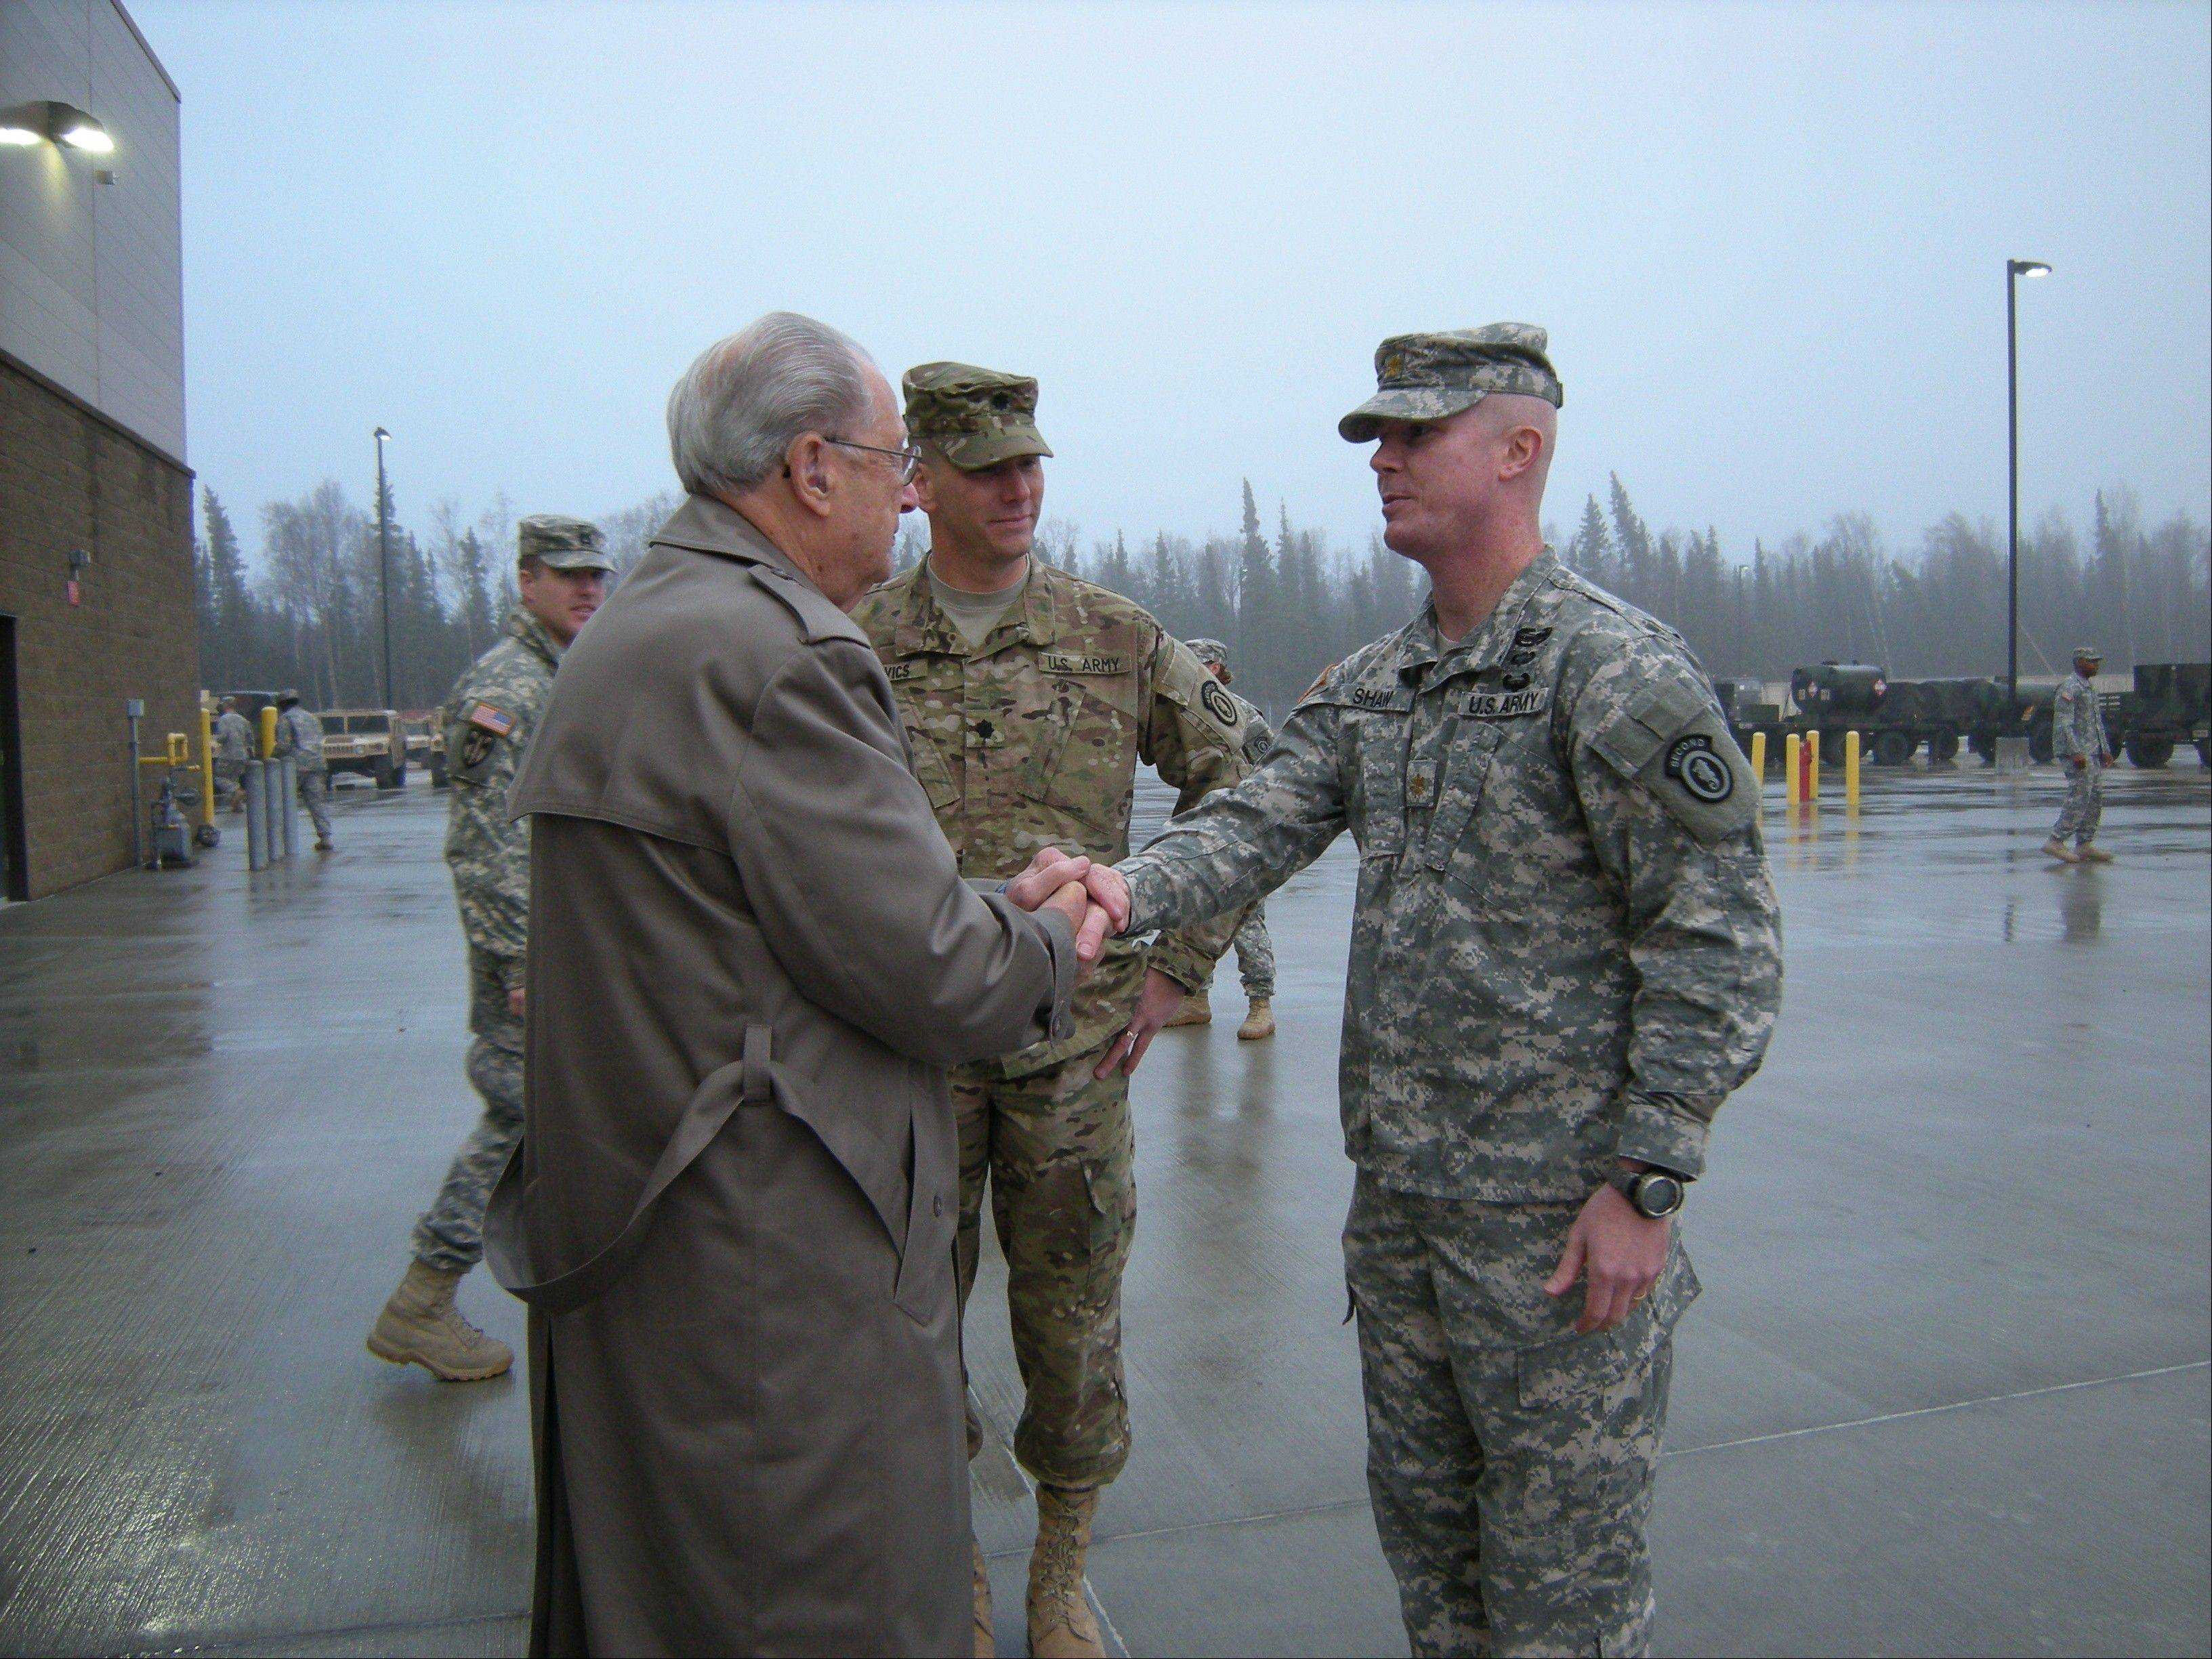 Frank DeRosa greets Lt. Col. Stephen Gabavics and Major John Shaw at the base in Alaska.